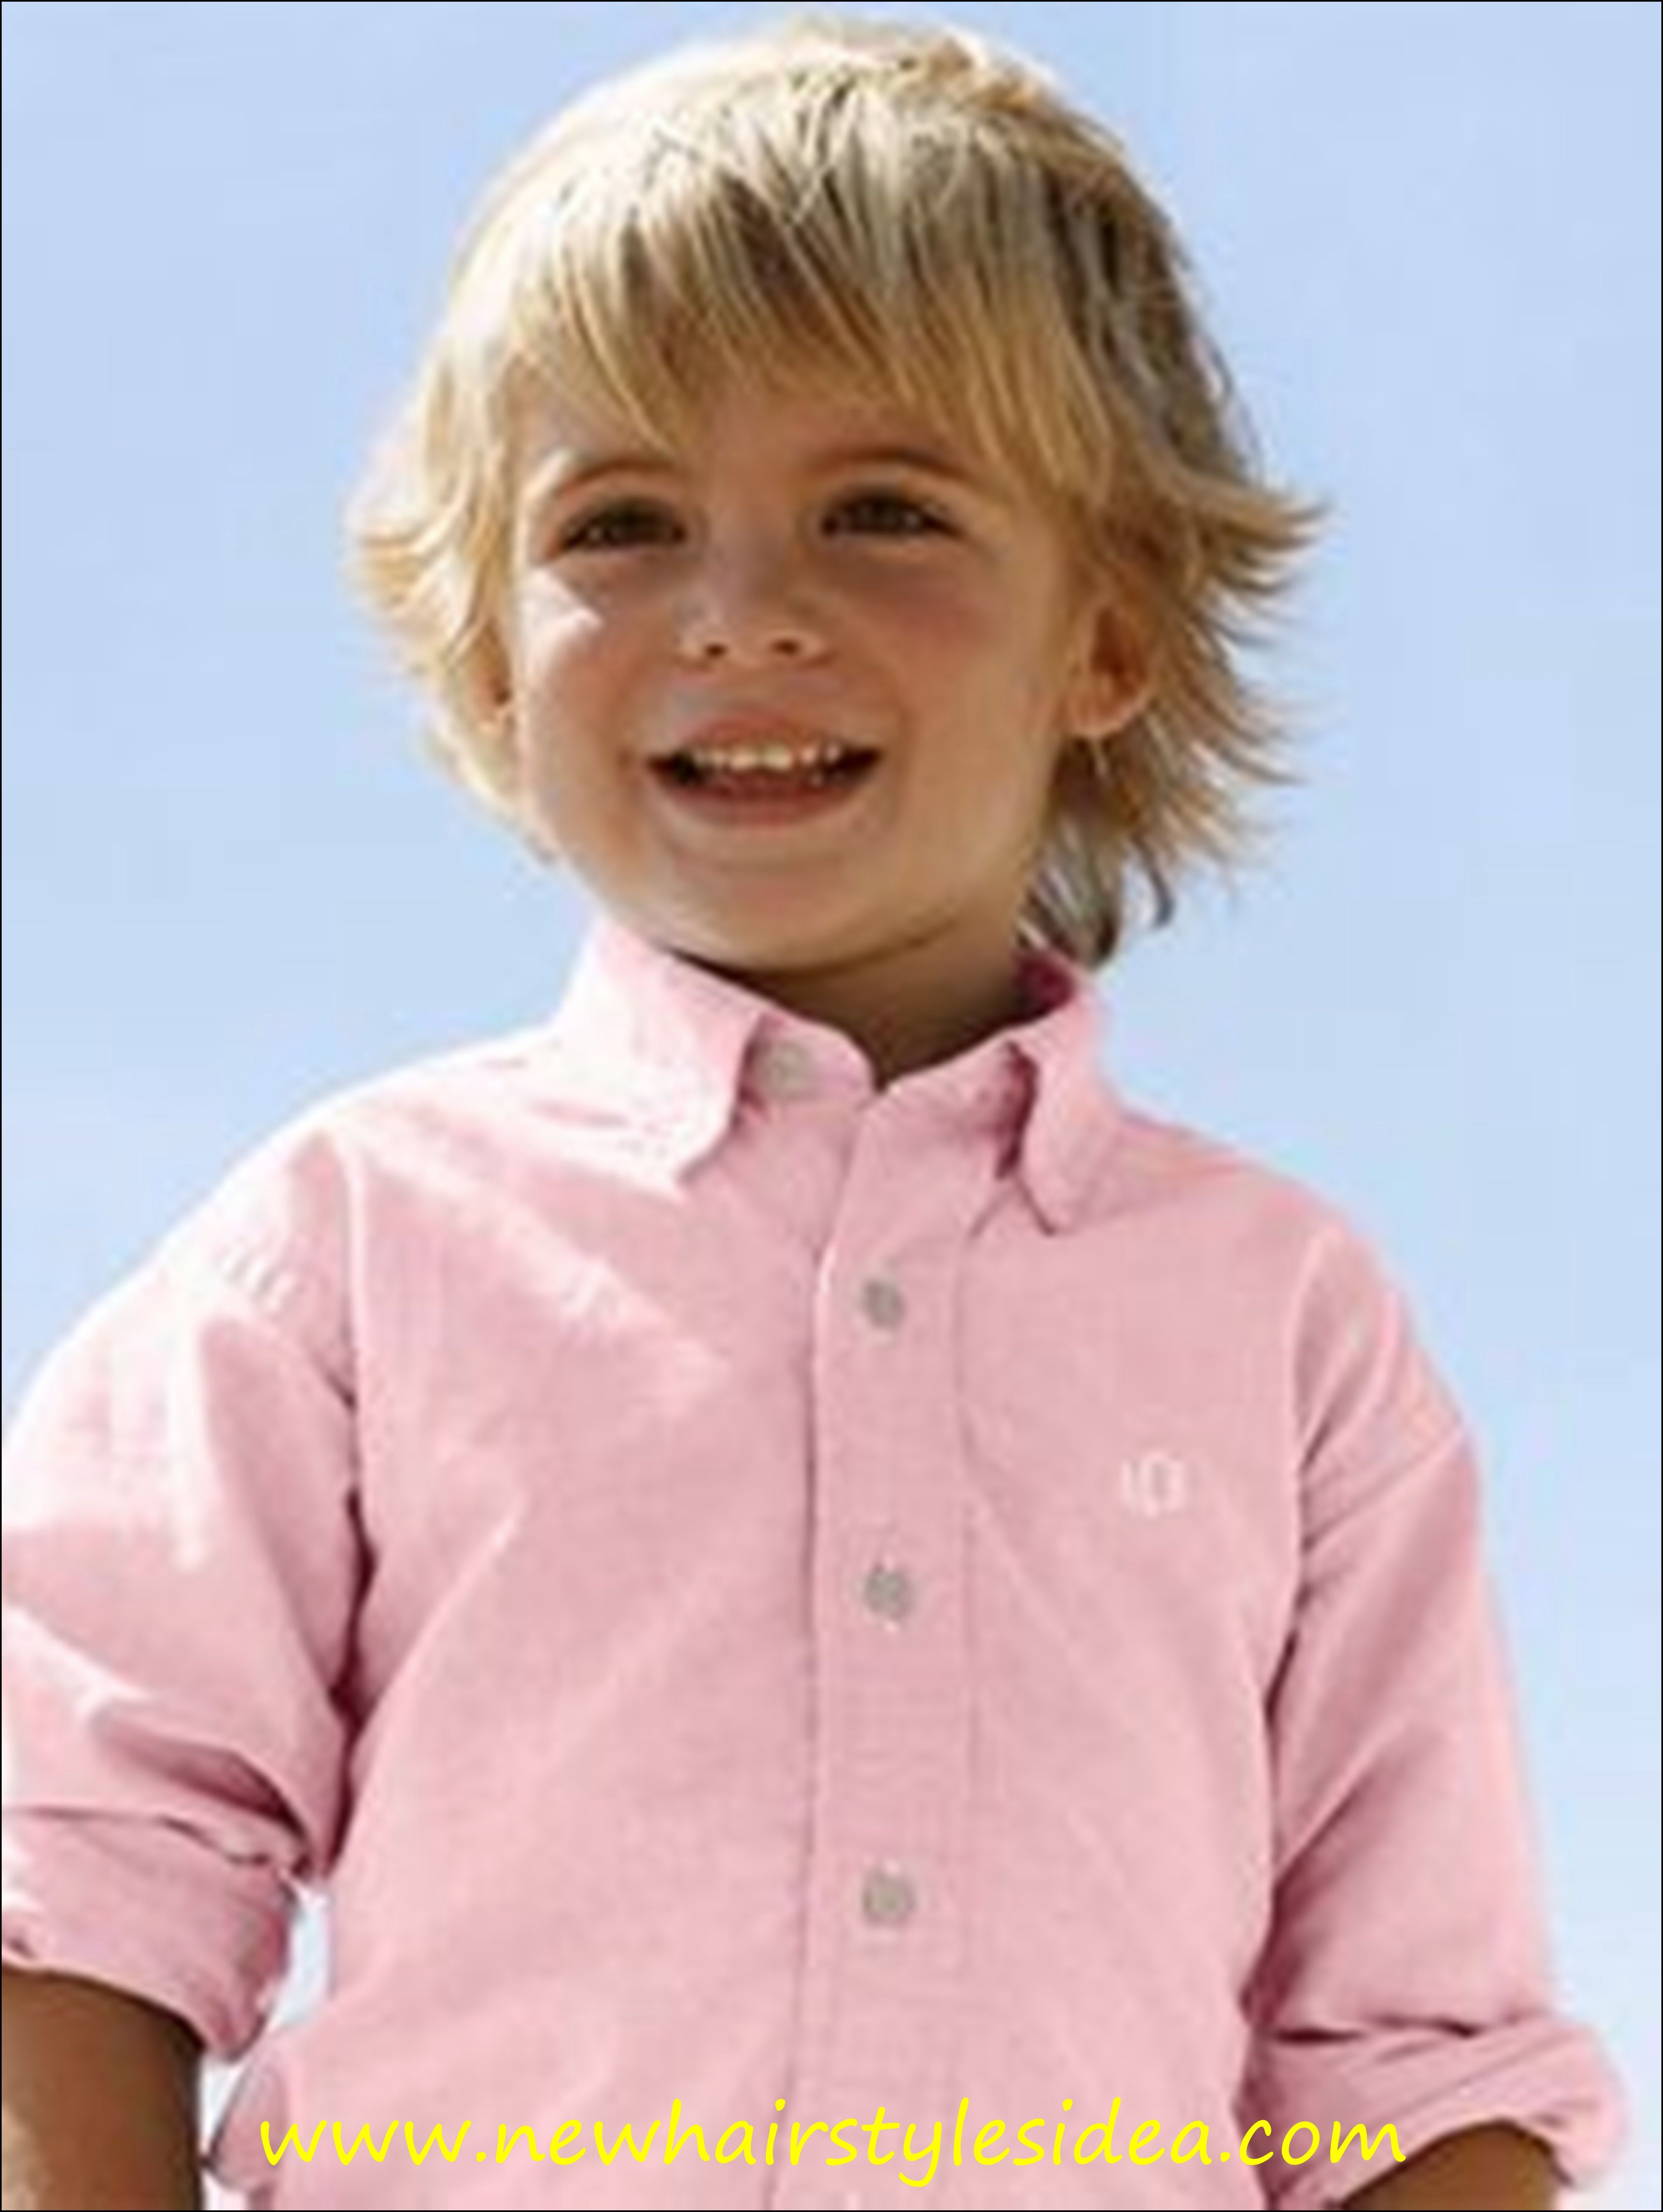 Admirable 1000 Ideas About Young Boy Haircuts On Pinterest Boy Haircuts Short Hairstyles Gunalazisus